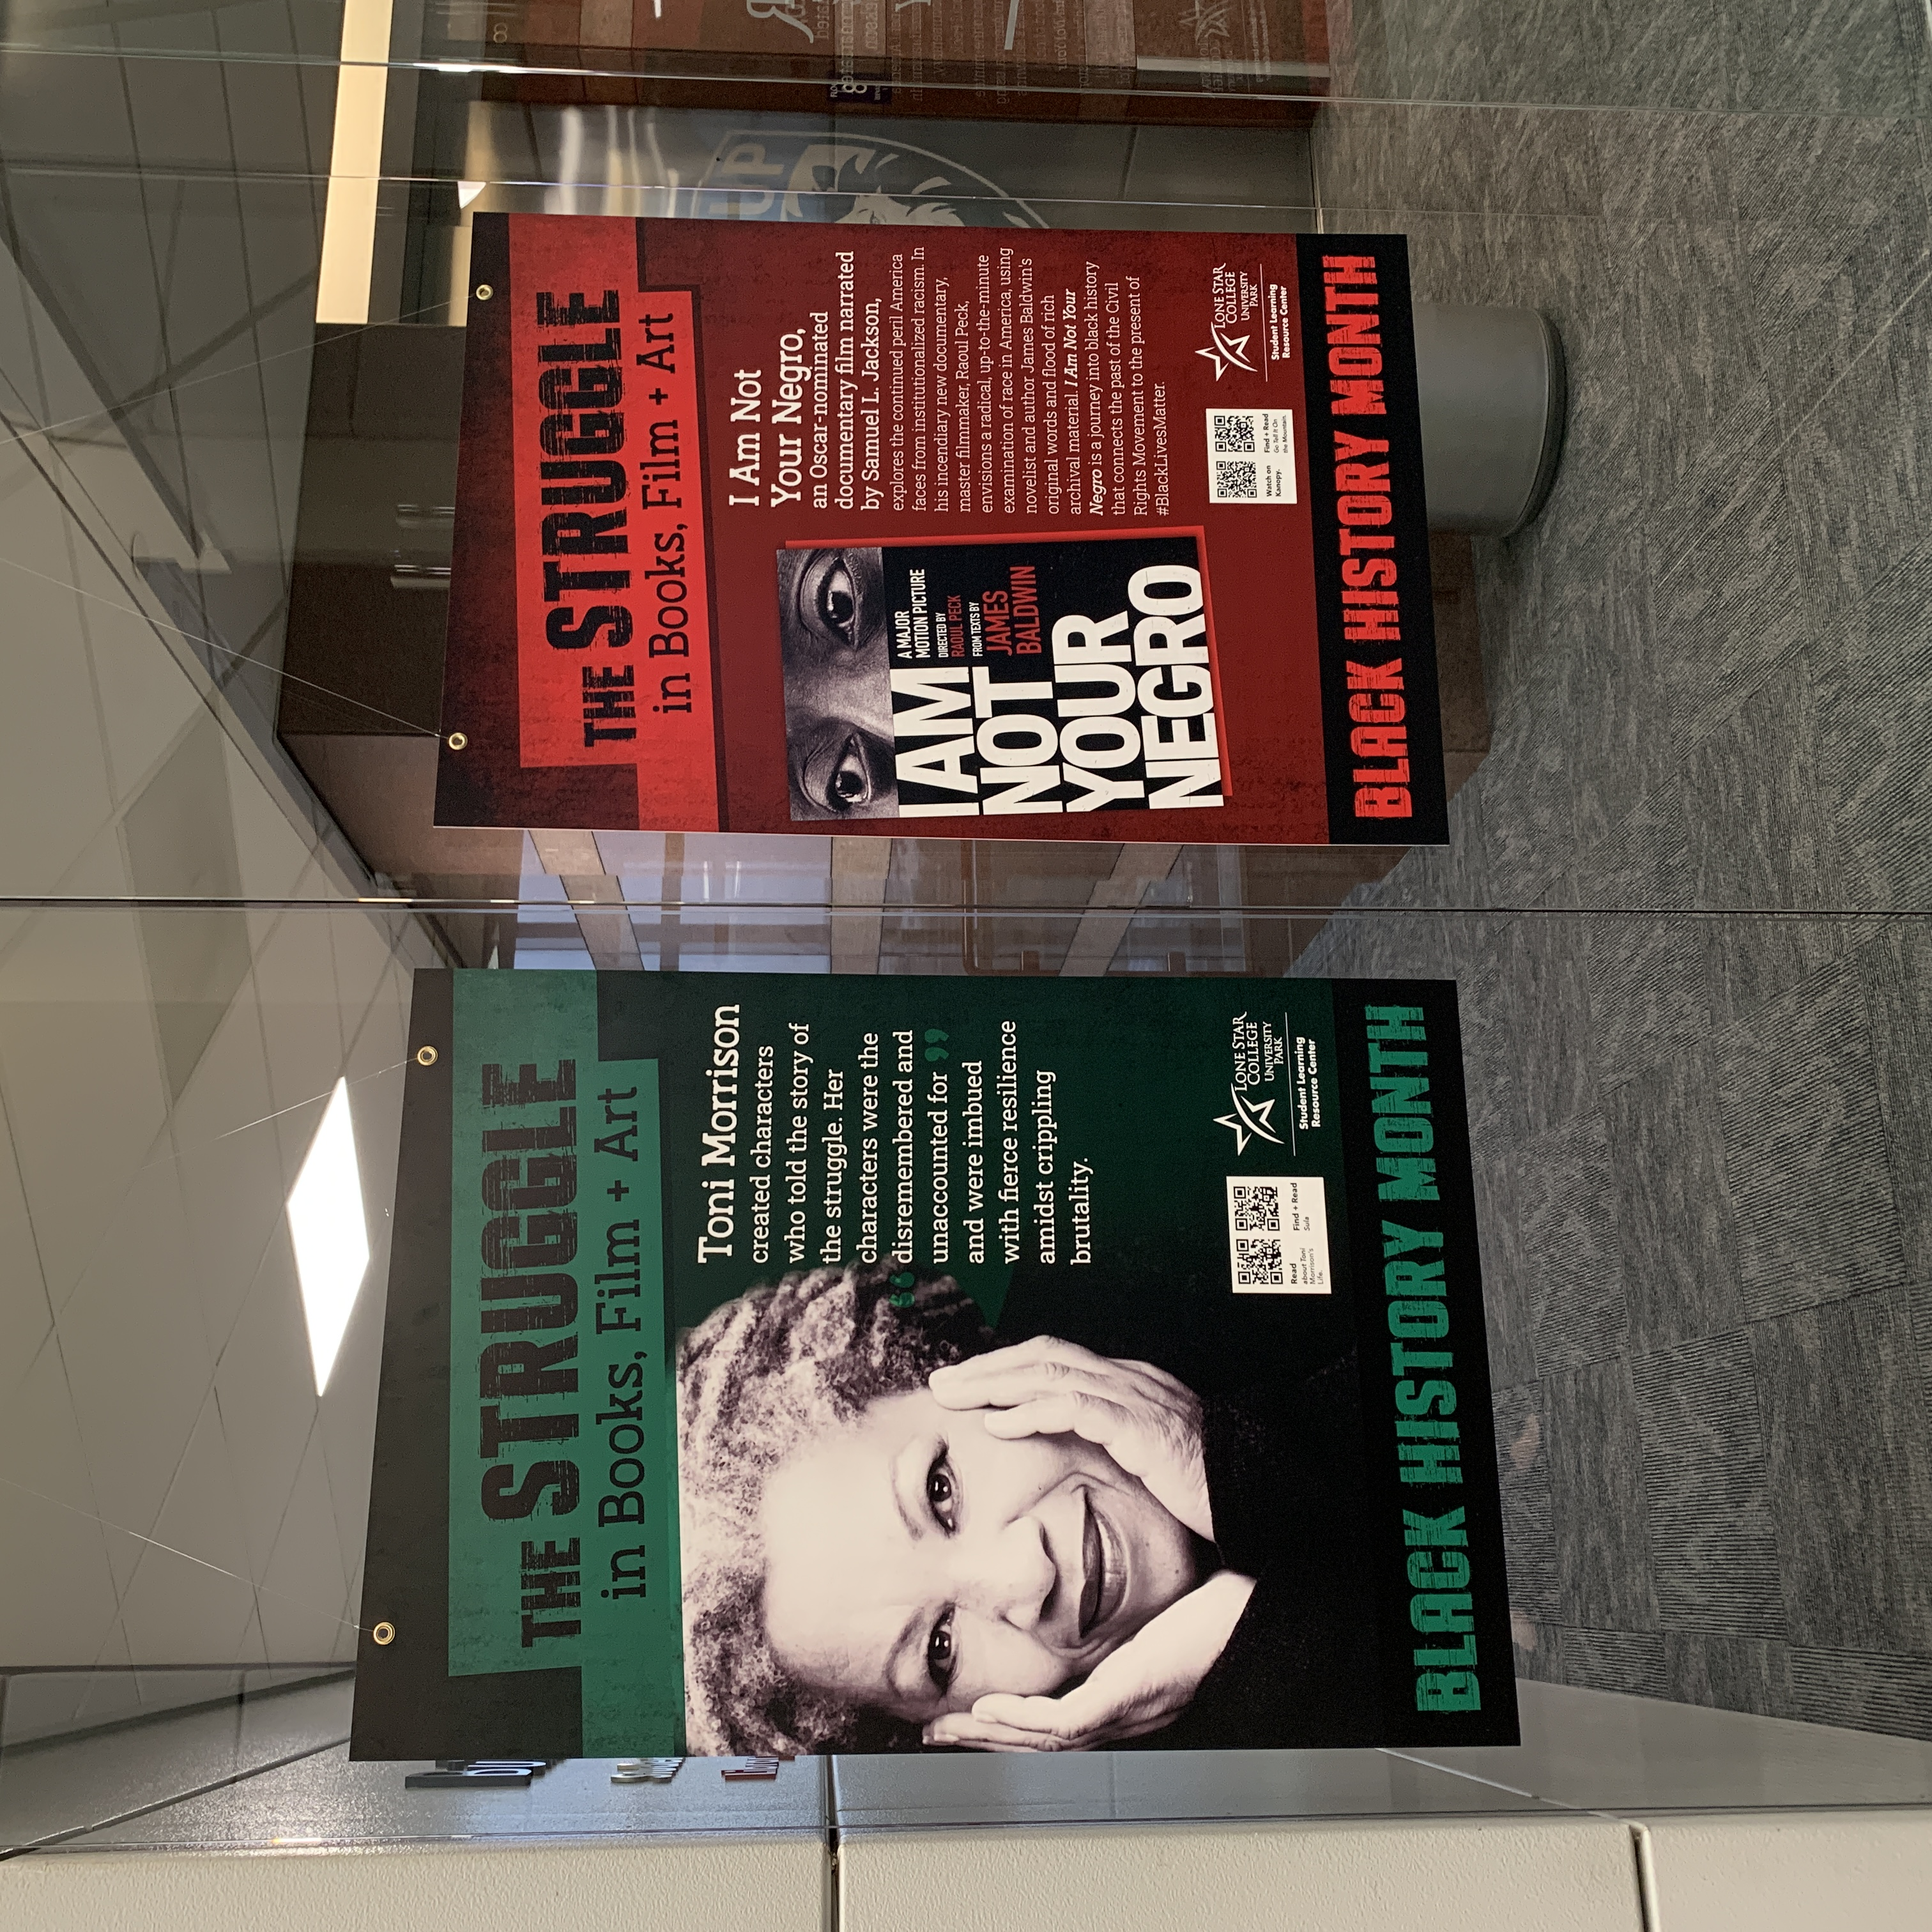 Image of posters depicting the struggle in books, film, and arts. The green poster discusses James Baldwin Toni Morrison; the red poster discusses